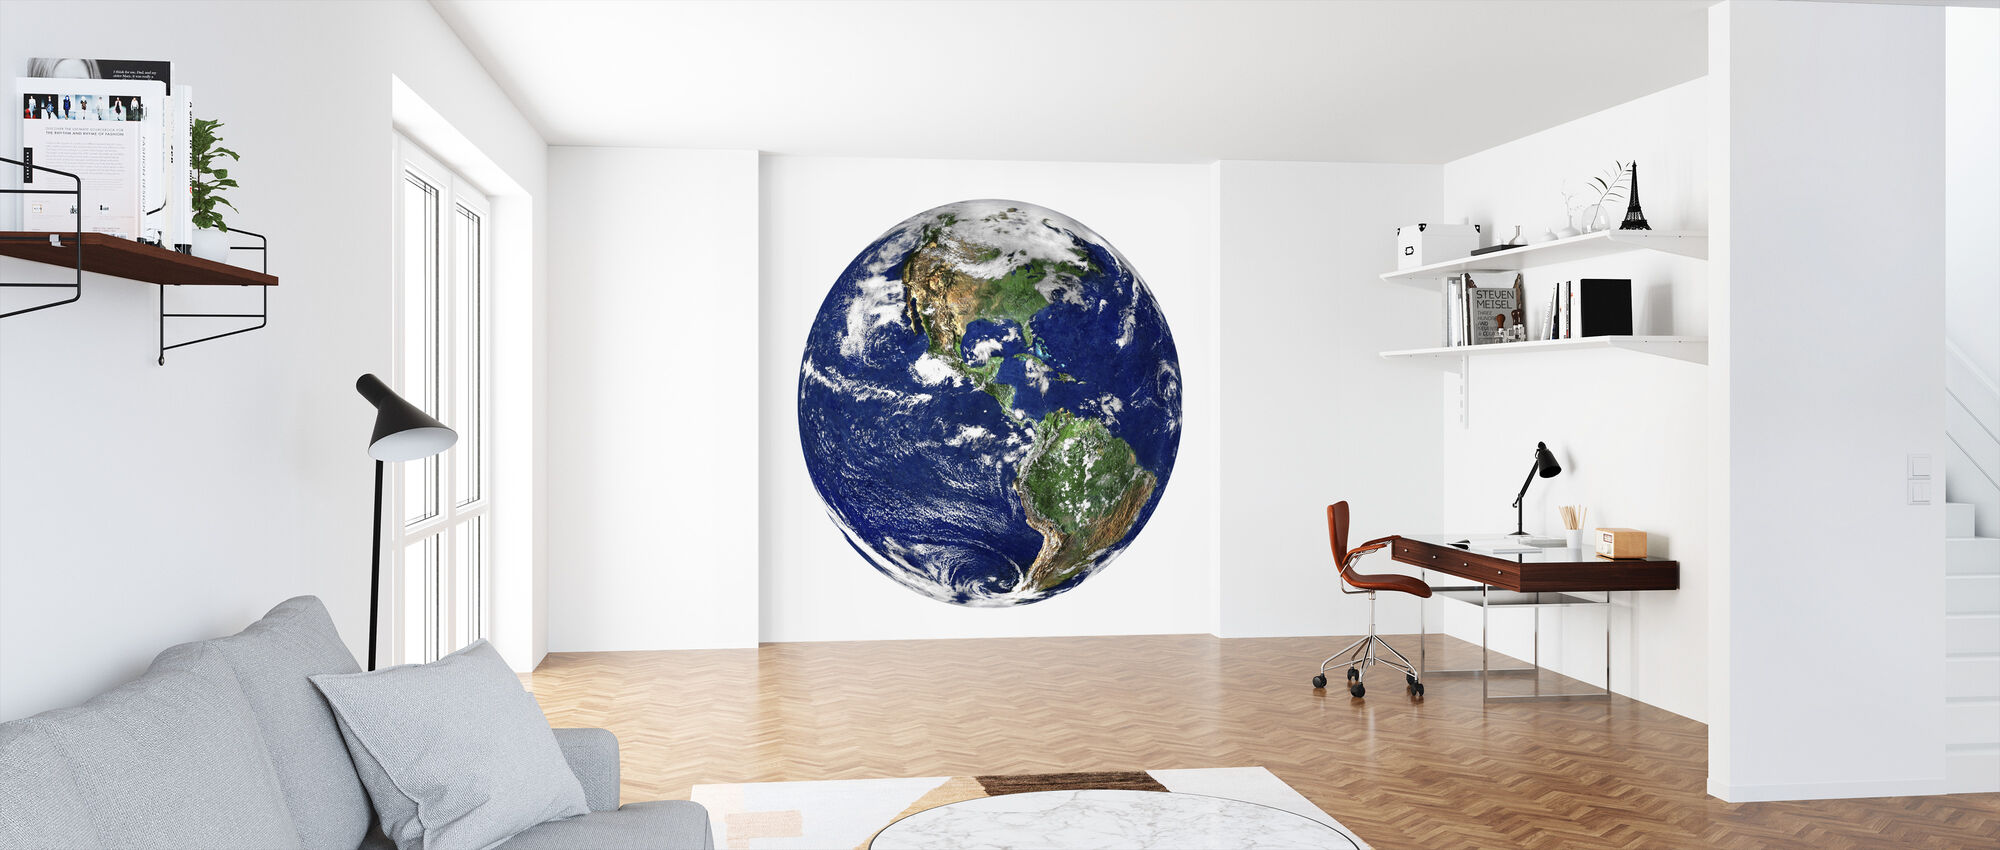 Globe - Wallpaper - Office